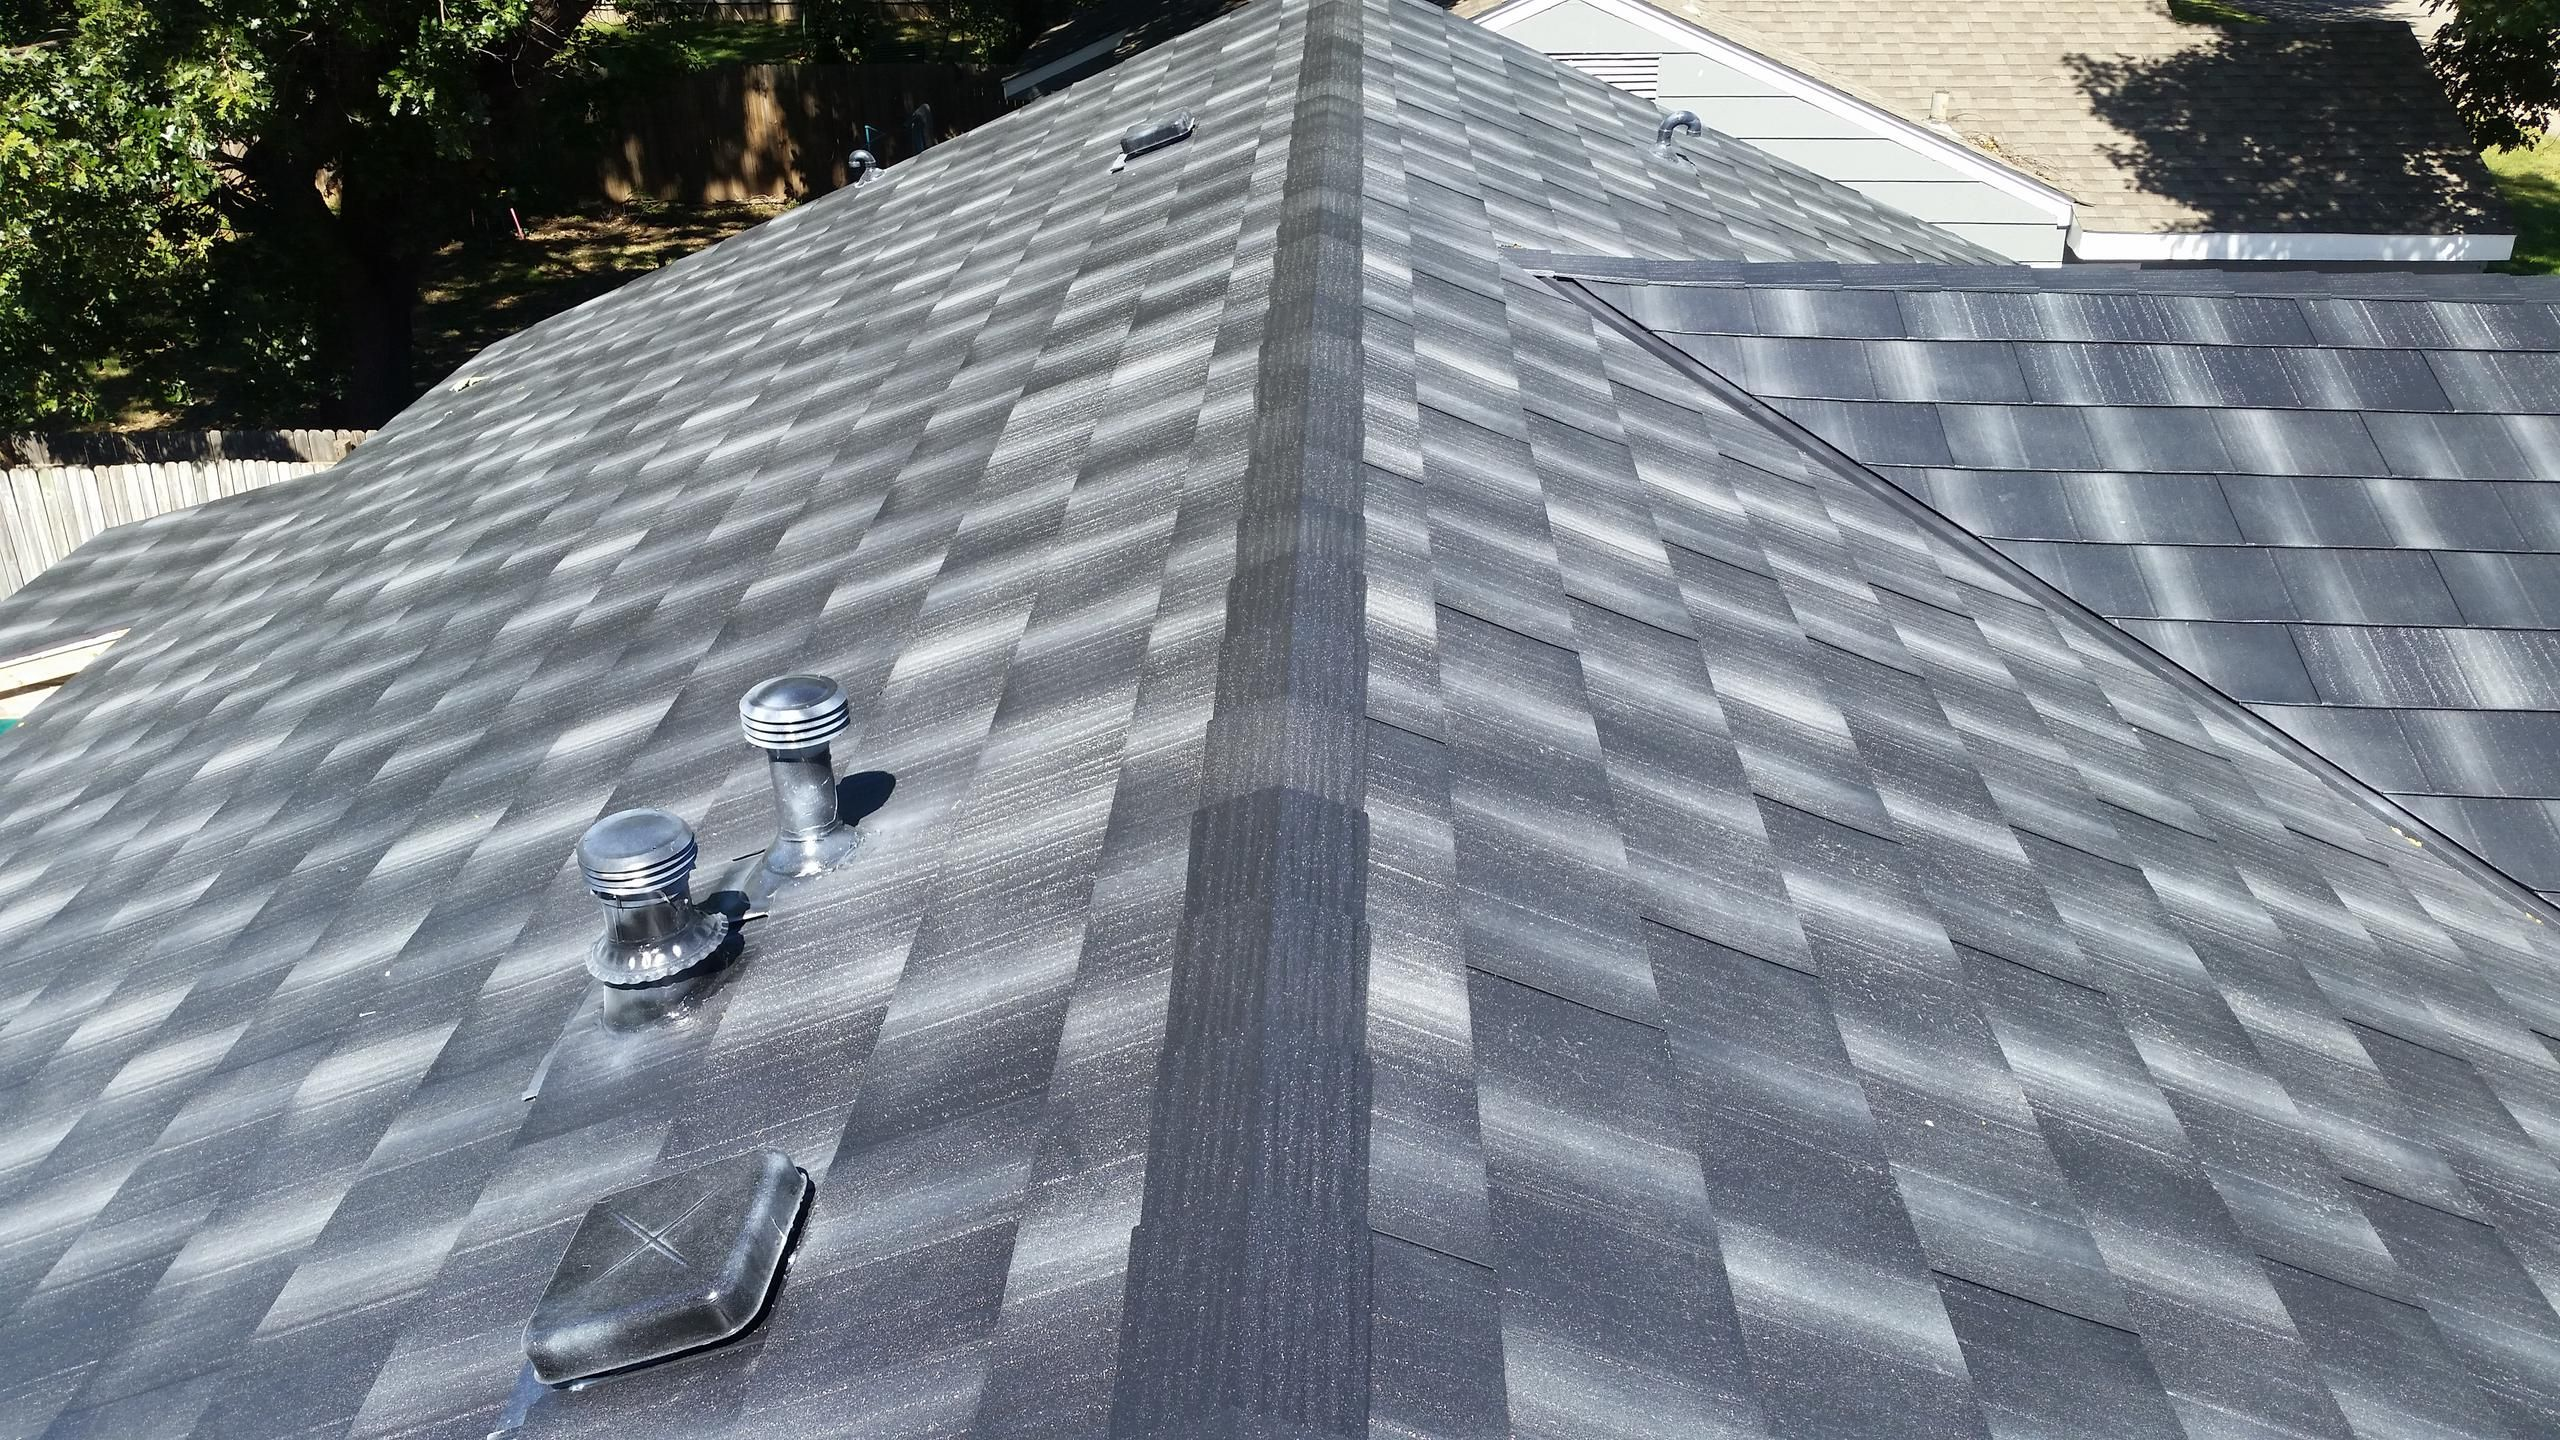 How To Know If You Need A New Roof Missing Cracked Or Curled Shingles Www Smartchoiceroofing Net For A Free Esti Leaking Roof Roof Leak Repair Roof Damage